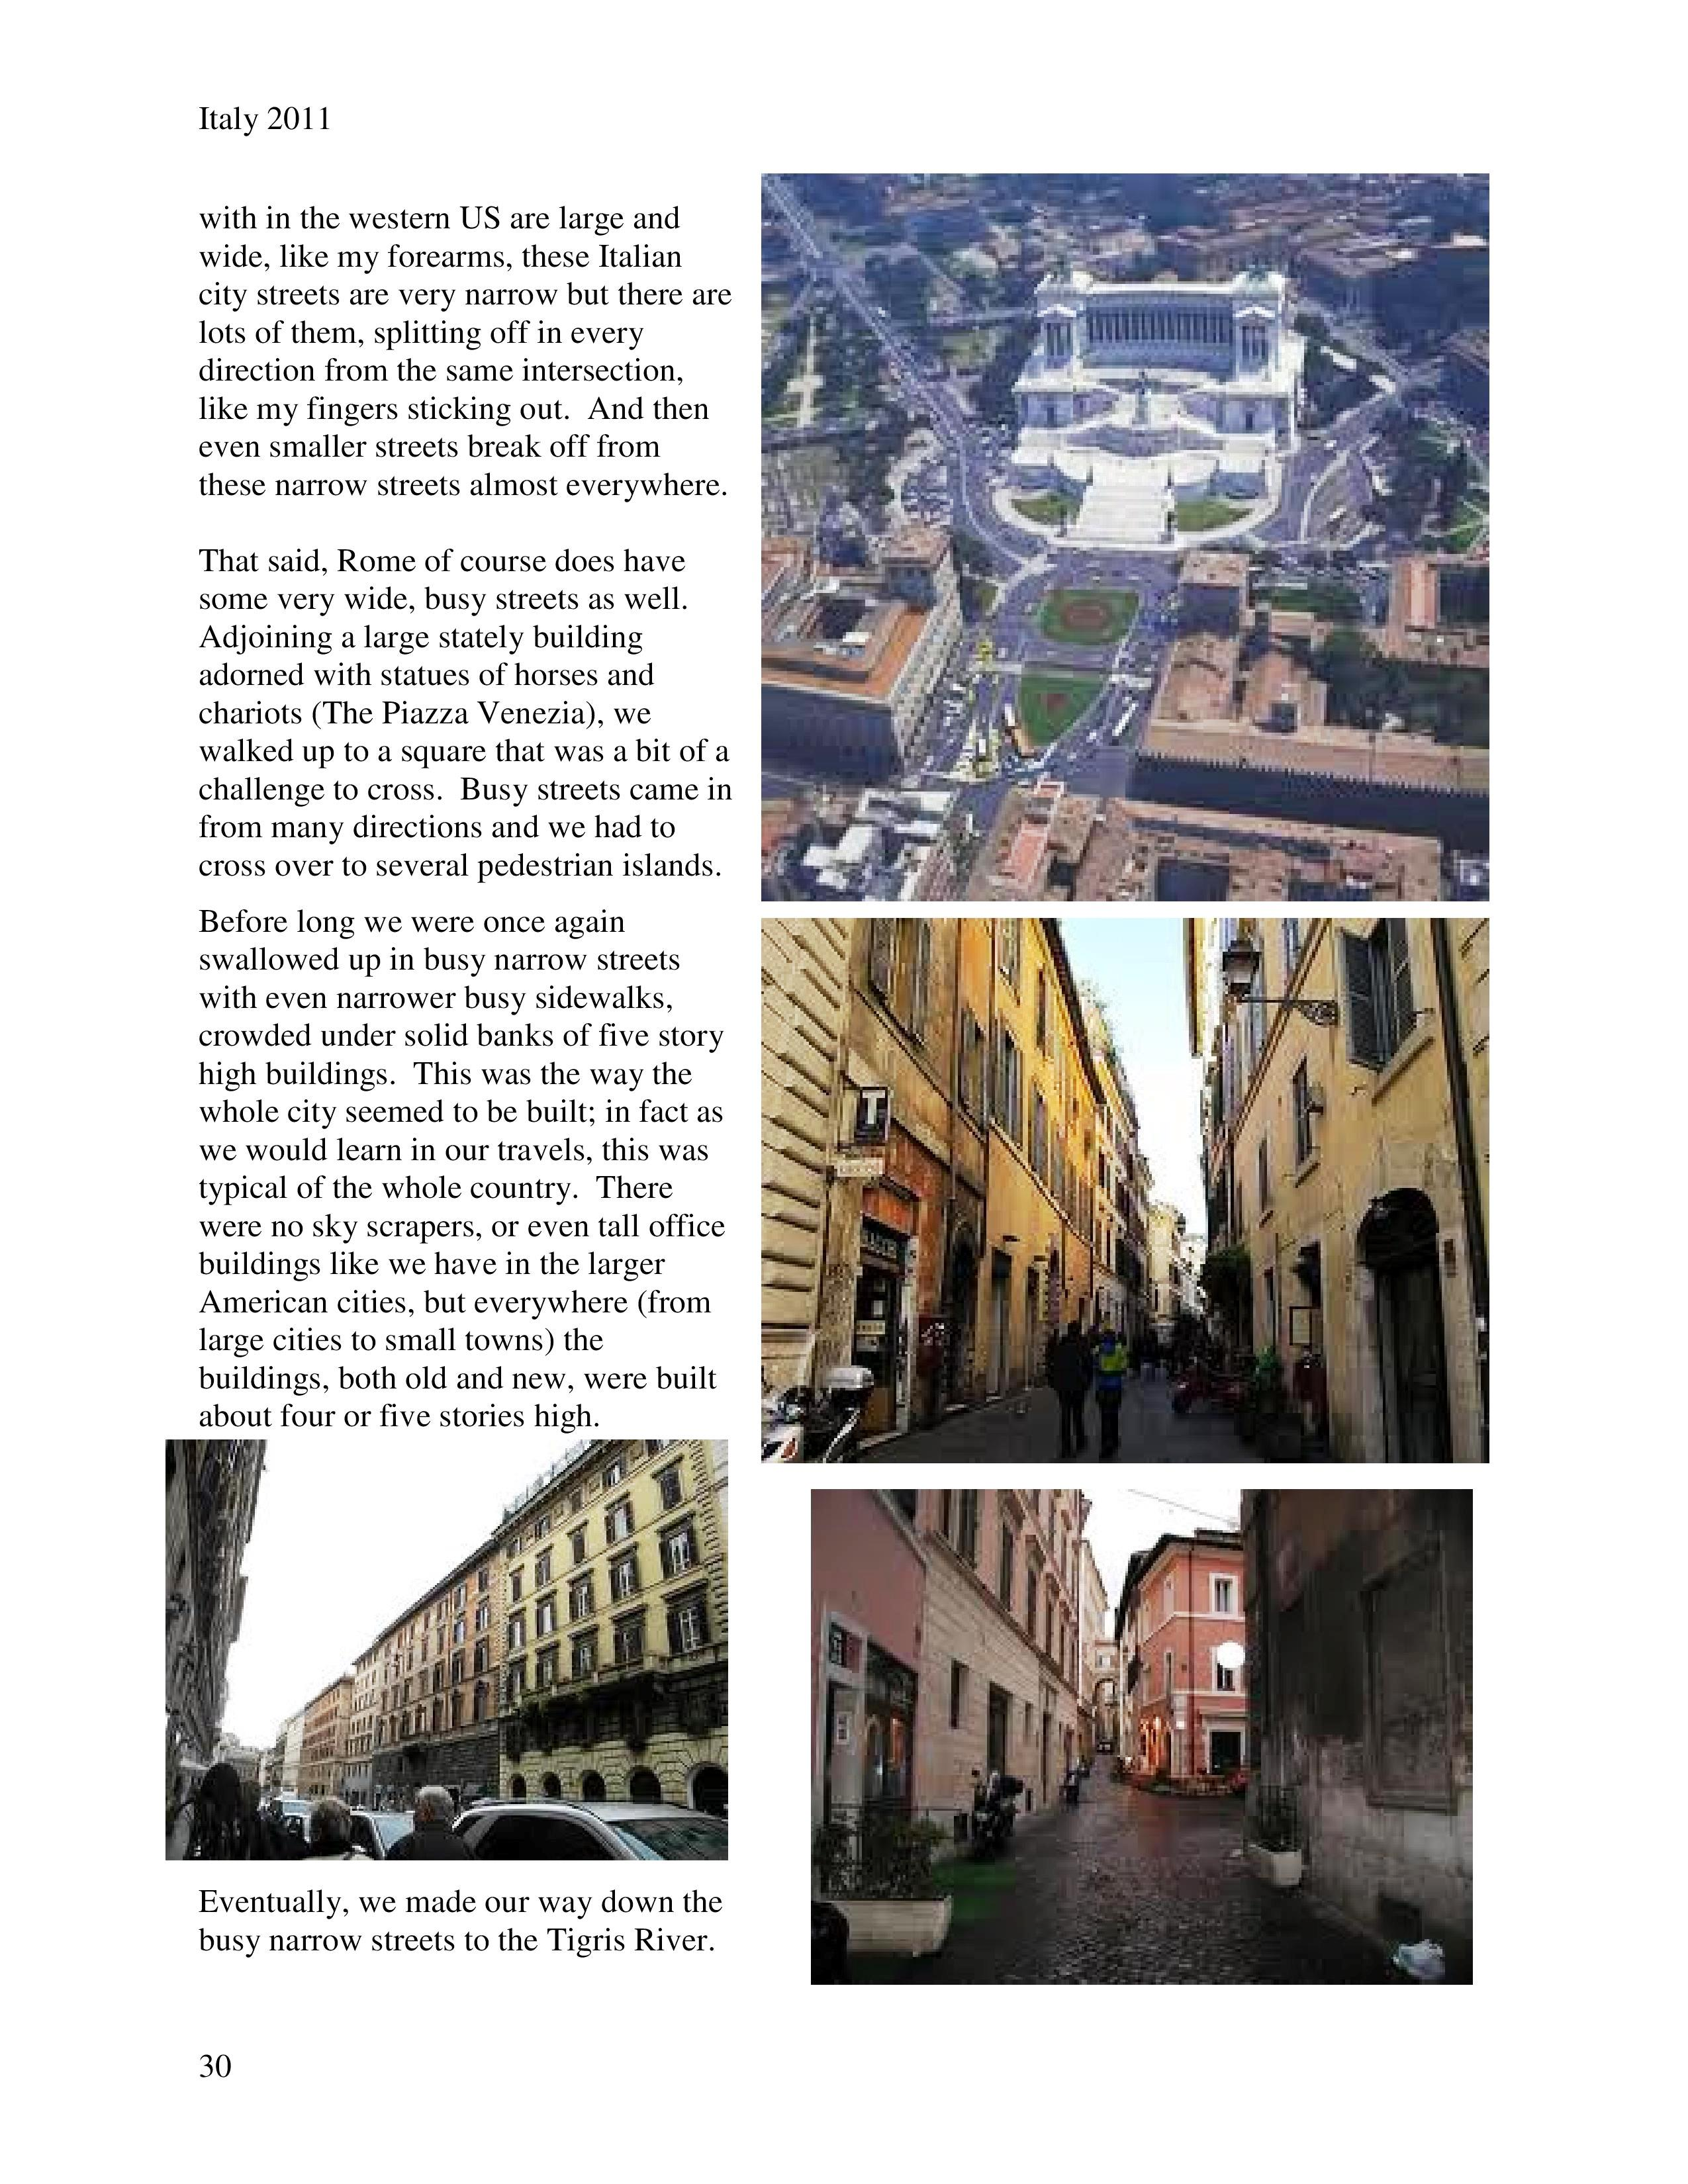 Italy 2011 May 2 - Day 4-page-004